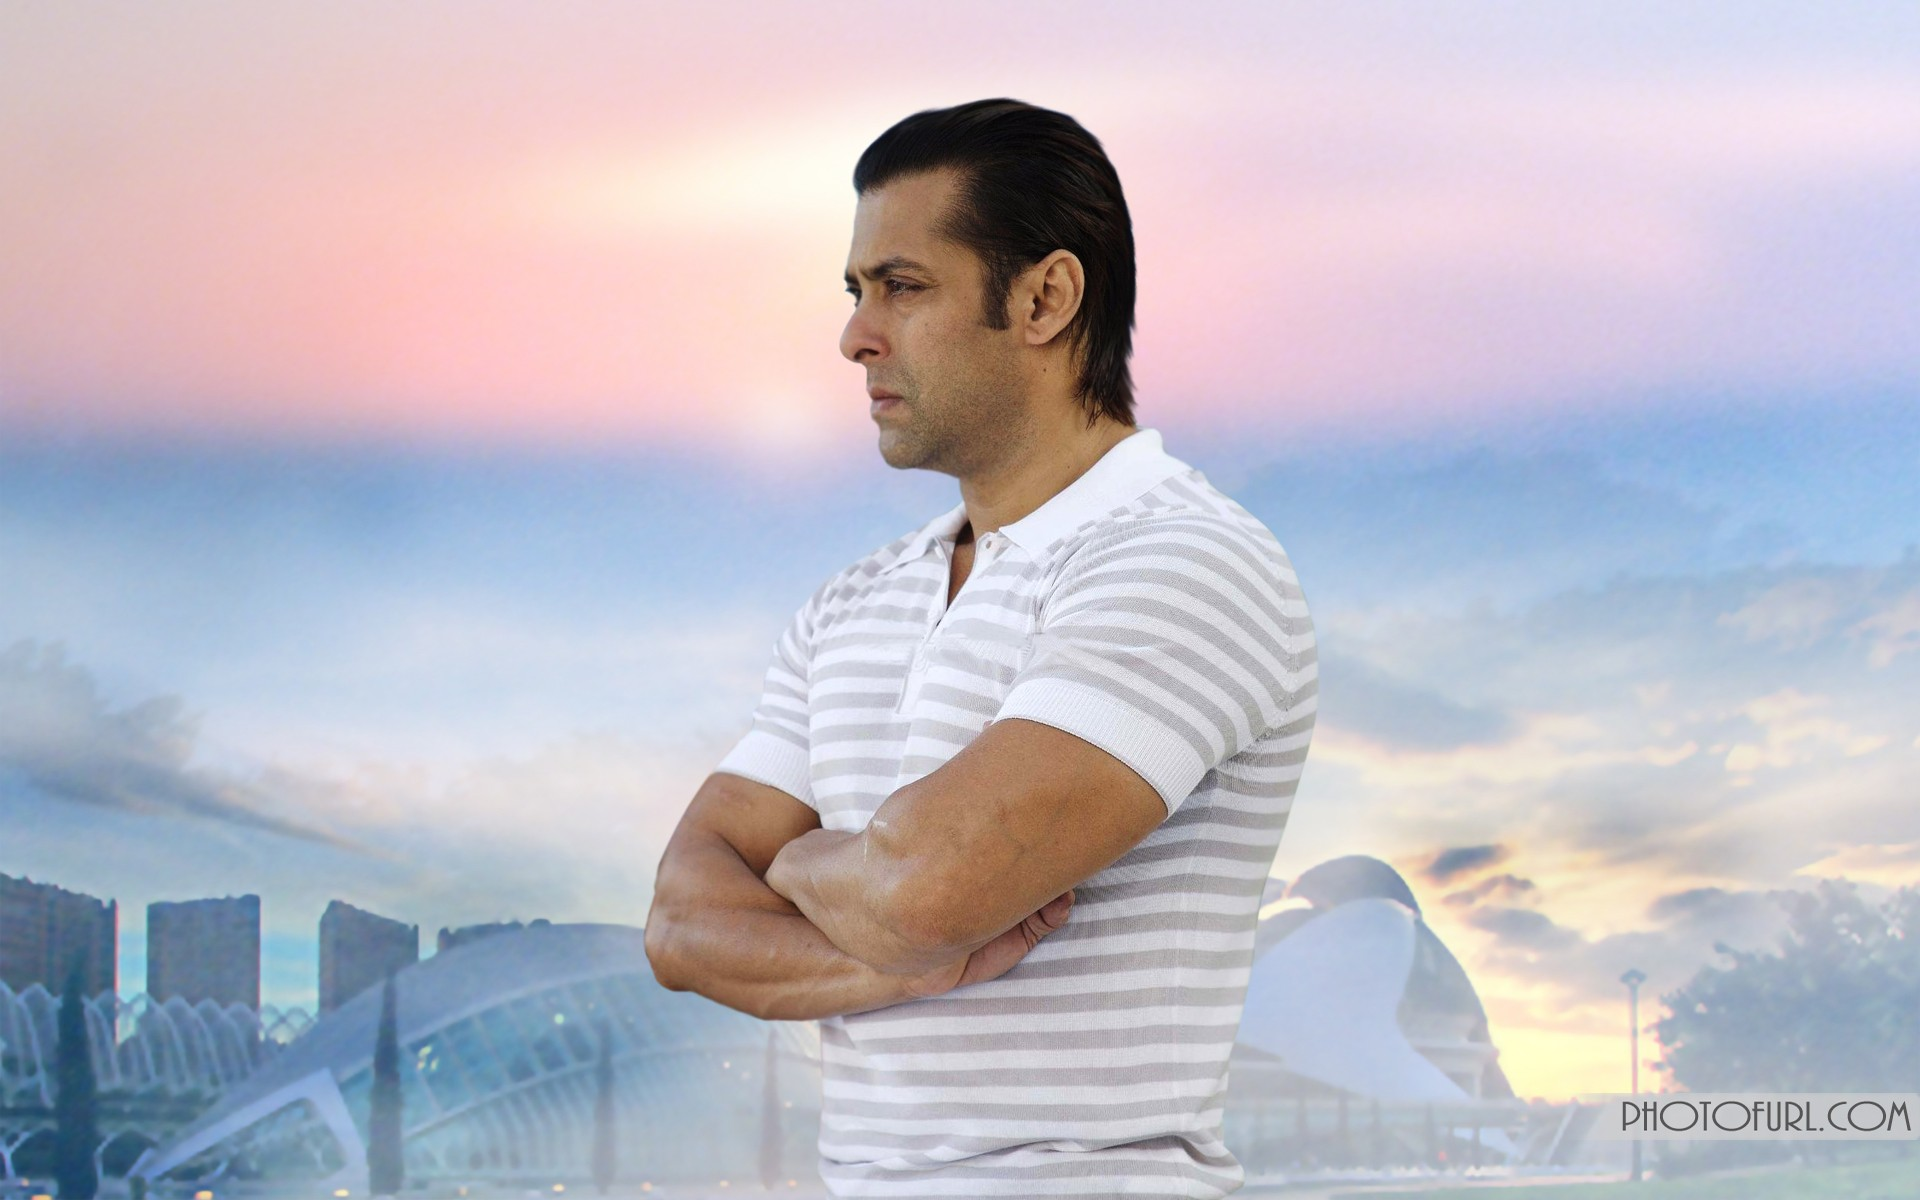 Wallpaper One Piece 3d For Android Salman Khan Wallpapers Pictures Images